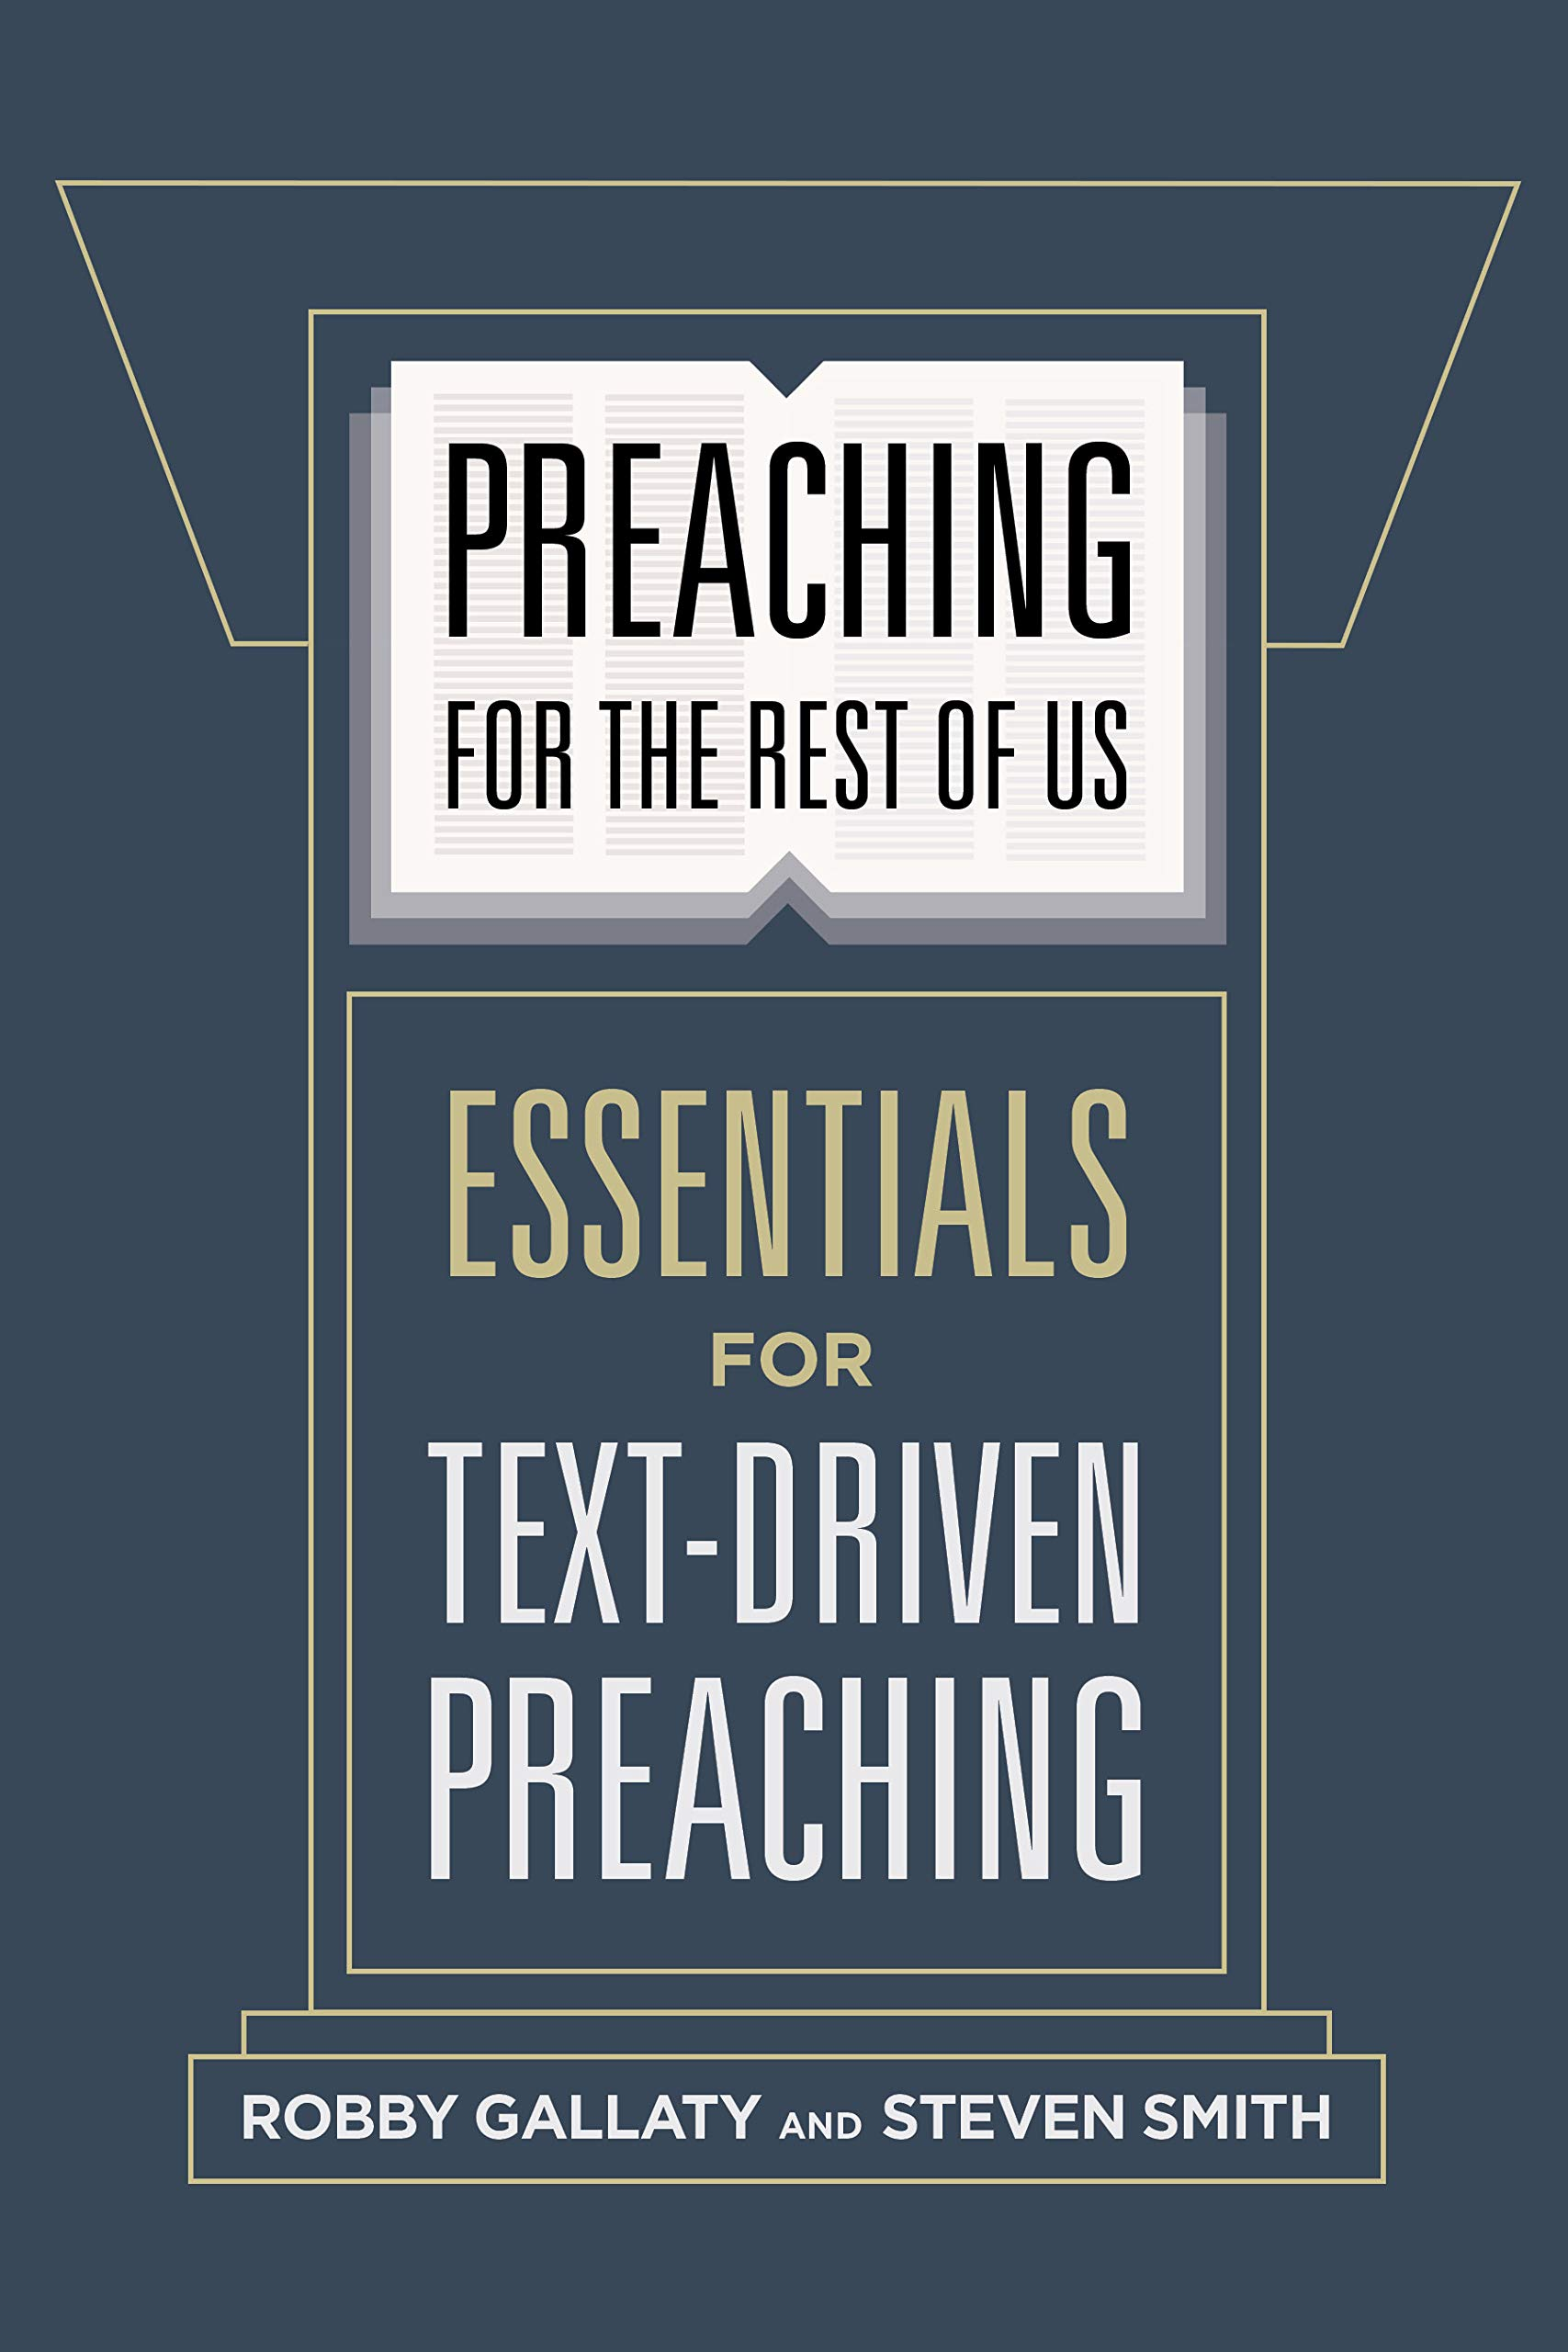 Preaching for the Rest of Us: Essentials for Text-Driven Preaching: Robby  Gallaty, Dr. Steven W. Smith: 9781462761623: Amazon.com: Books